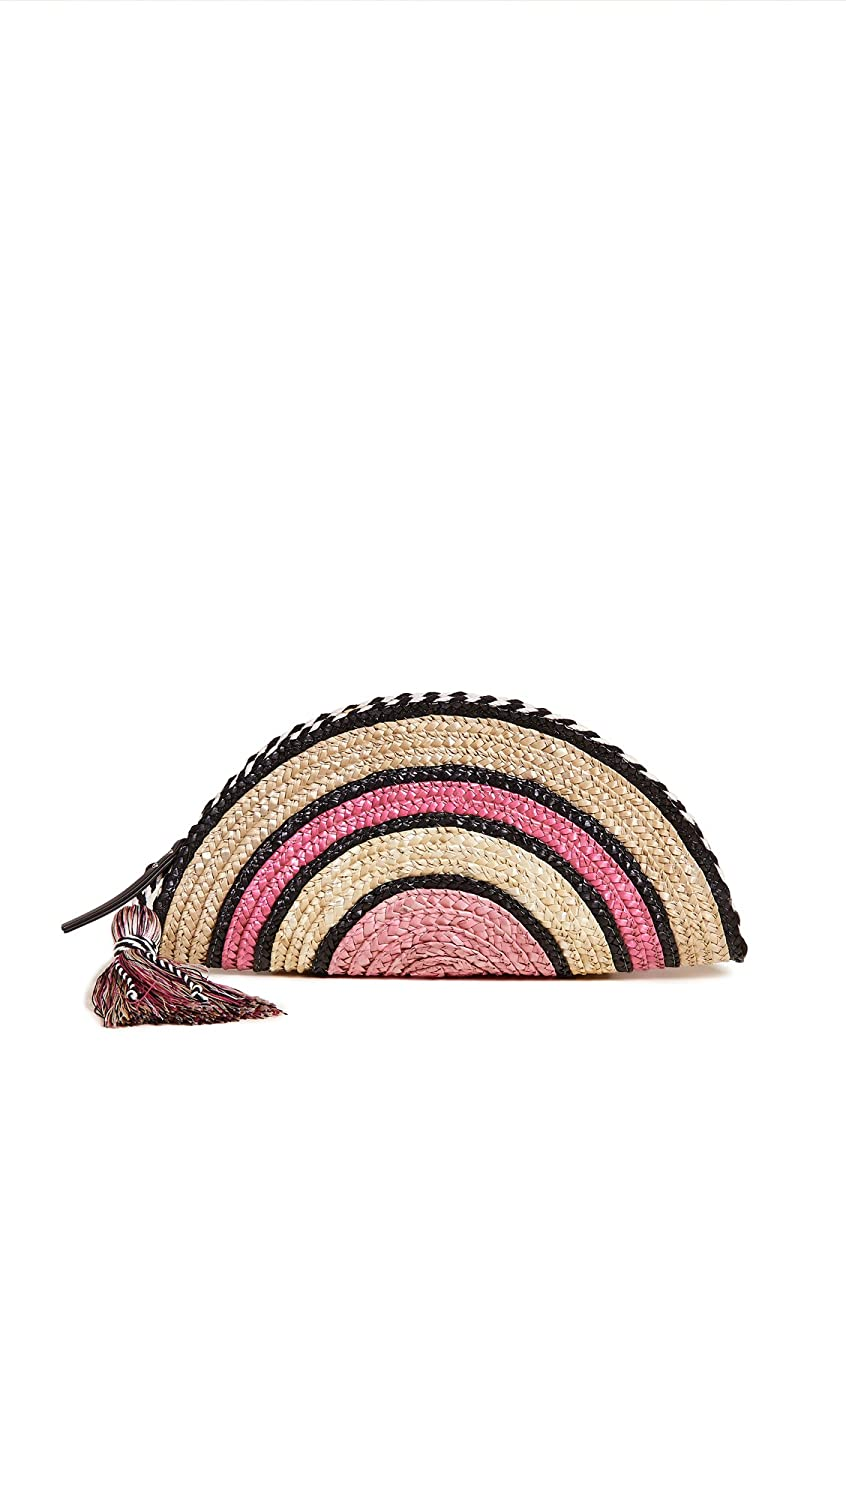 Rebecca Minkoff Women's Straw Taco Clutch Blue Multi One Size Rebecca Minkoff-Non Apparel